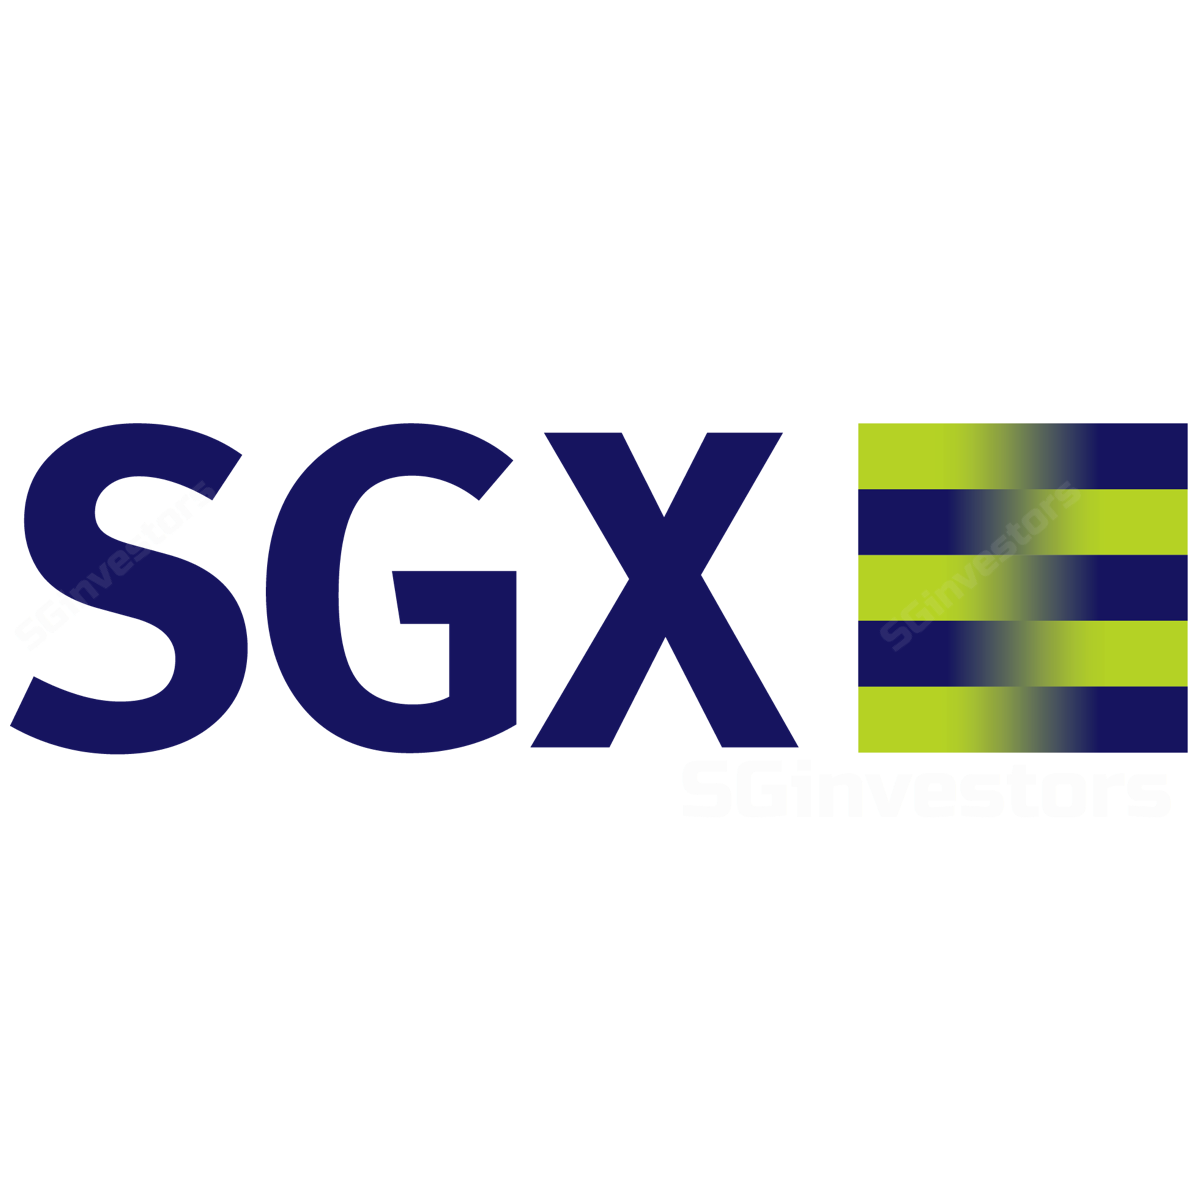 SGX - OCBC Investment 2017-10-26: Exploring More Opportunities